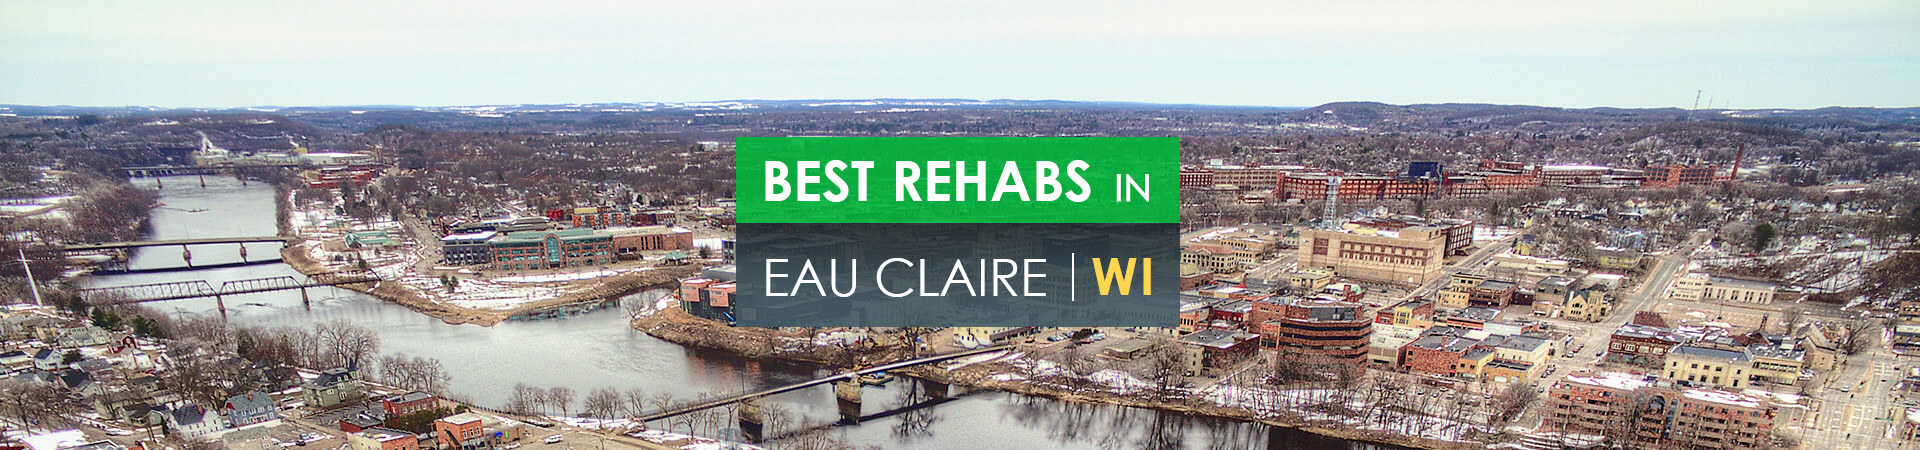 Best rehabs in Eau Claire, WI